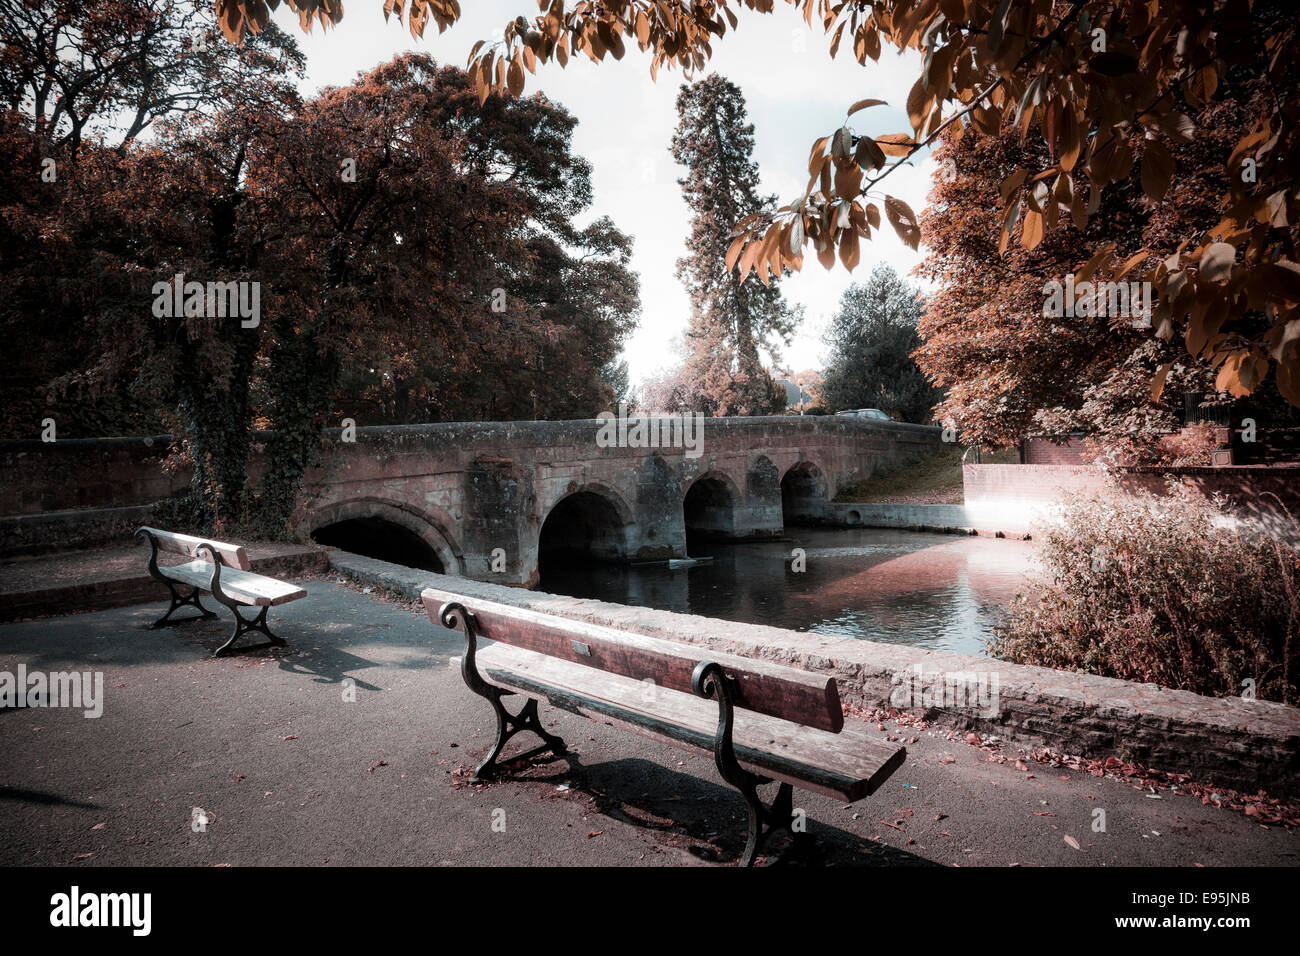 Unoccupied benches by stone bridge over the River Avon processed for soft autumn colours - Stock Image